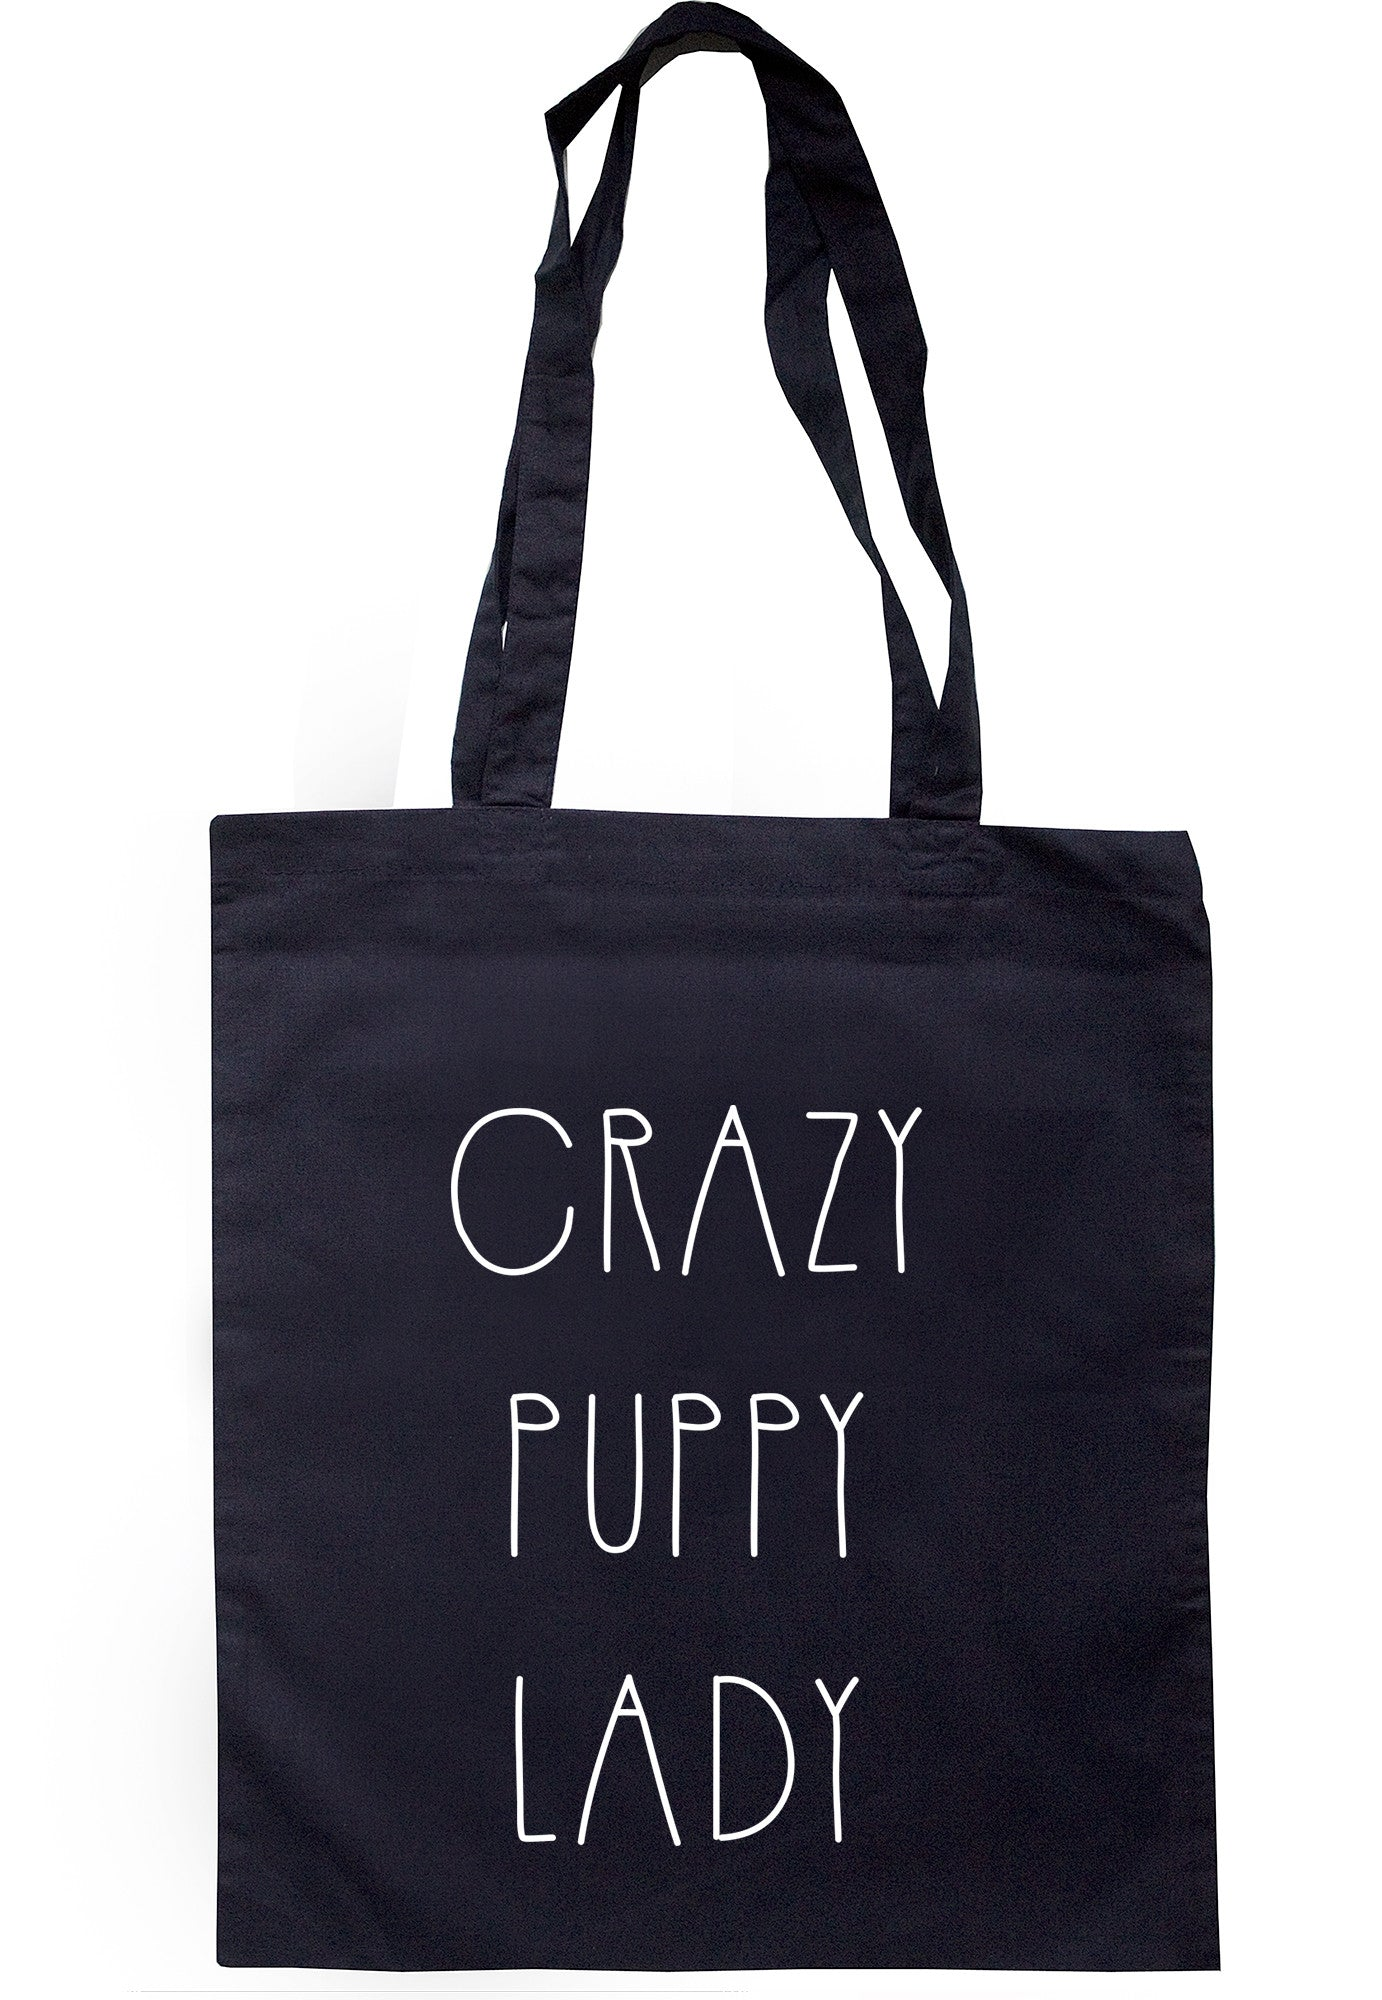 Crazy Puppy Lady Tote Bag TB0387 - Illustrated Identity Ltd.